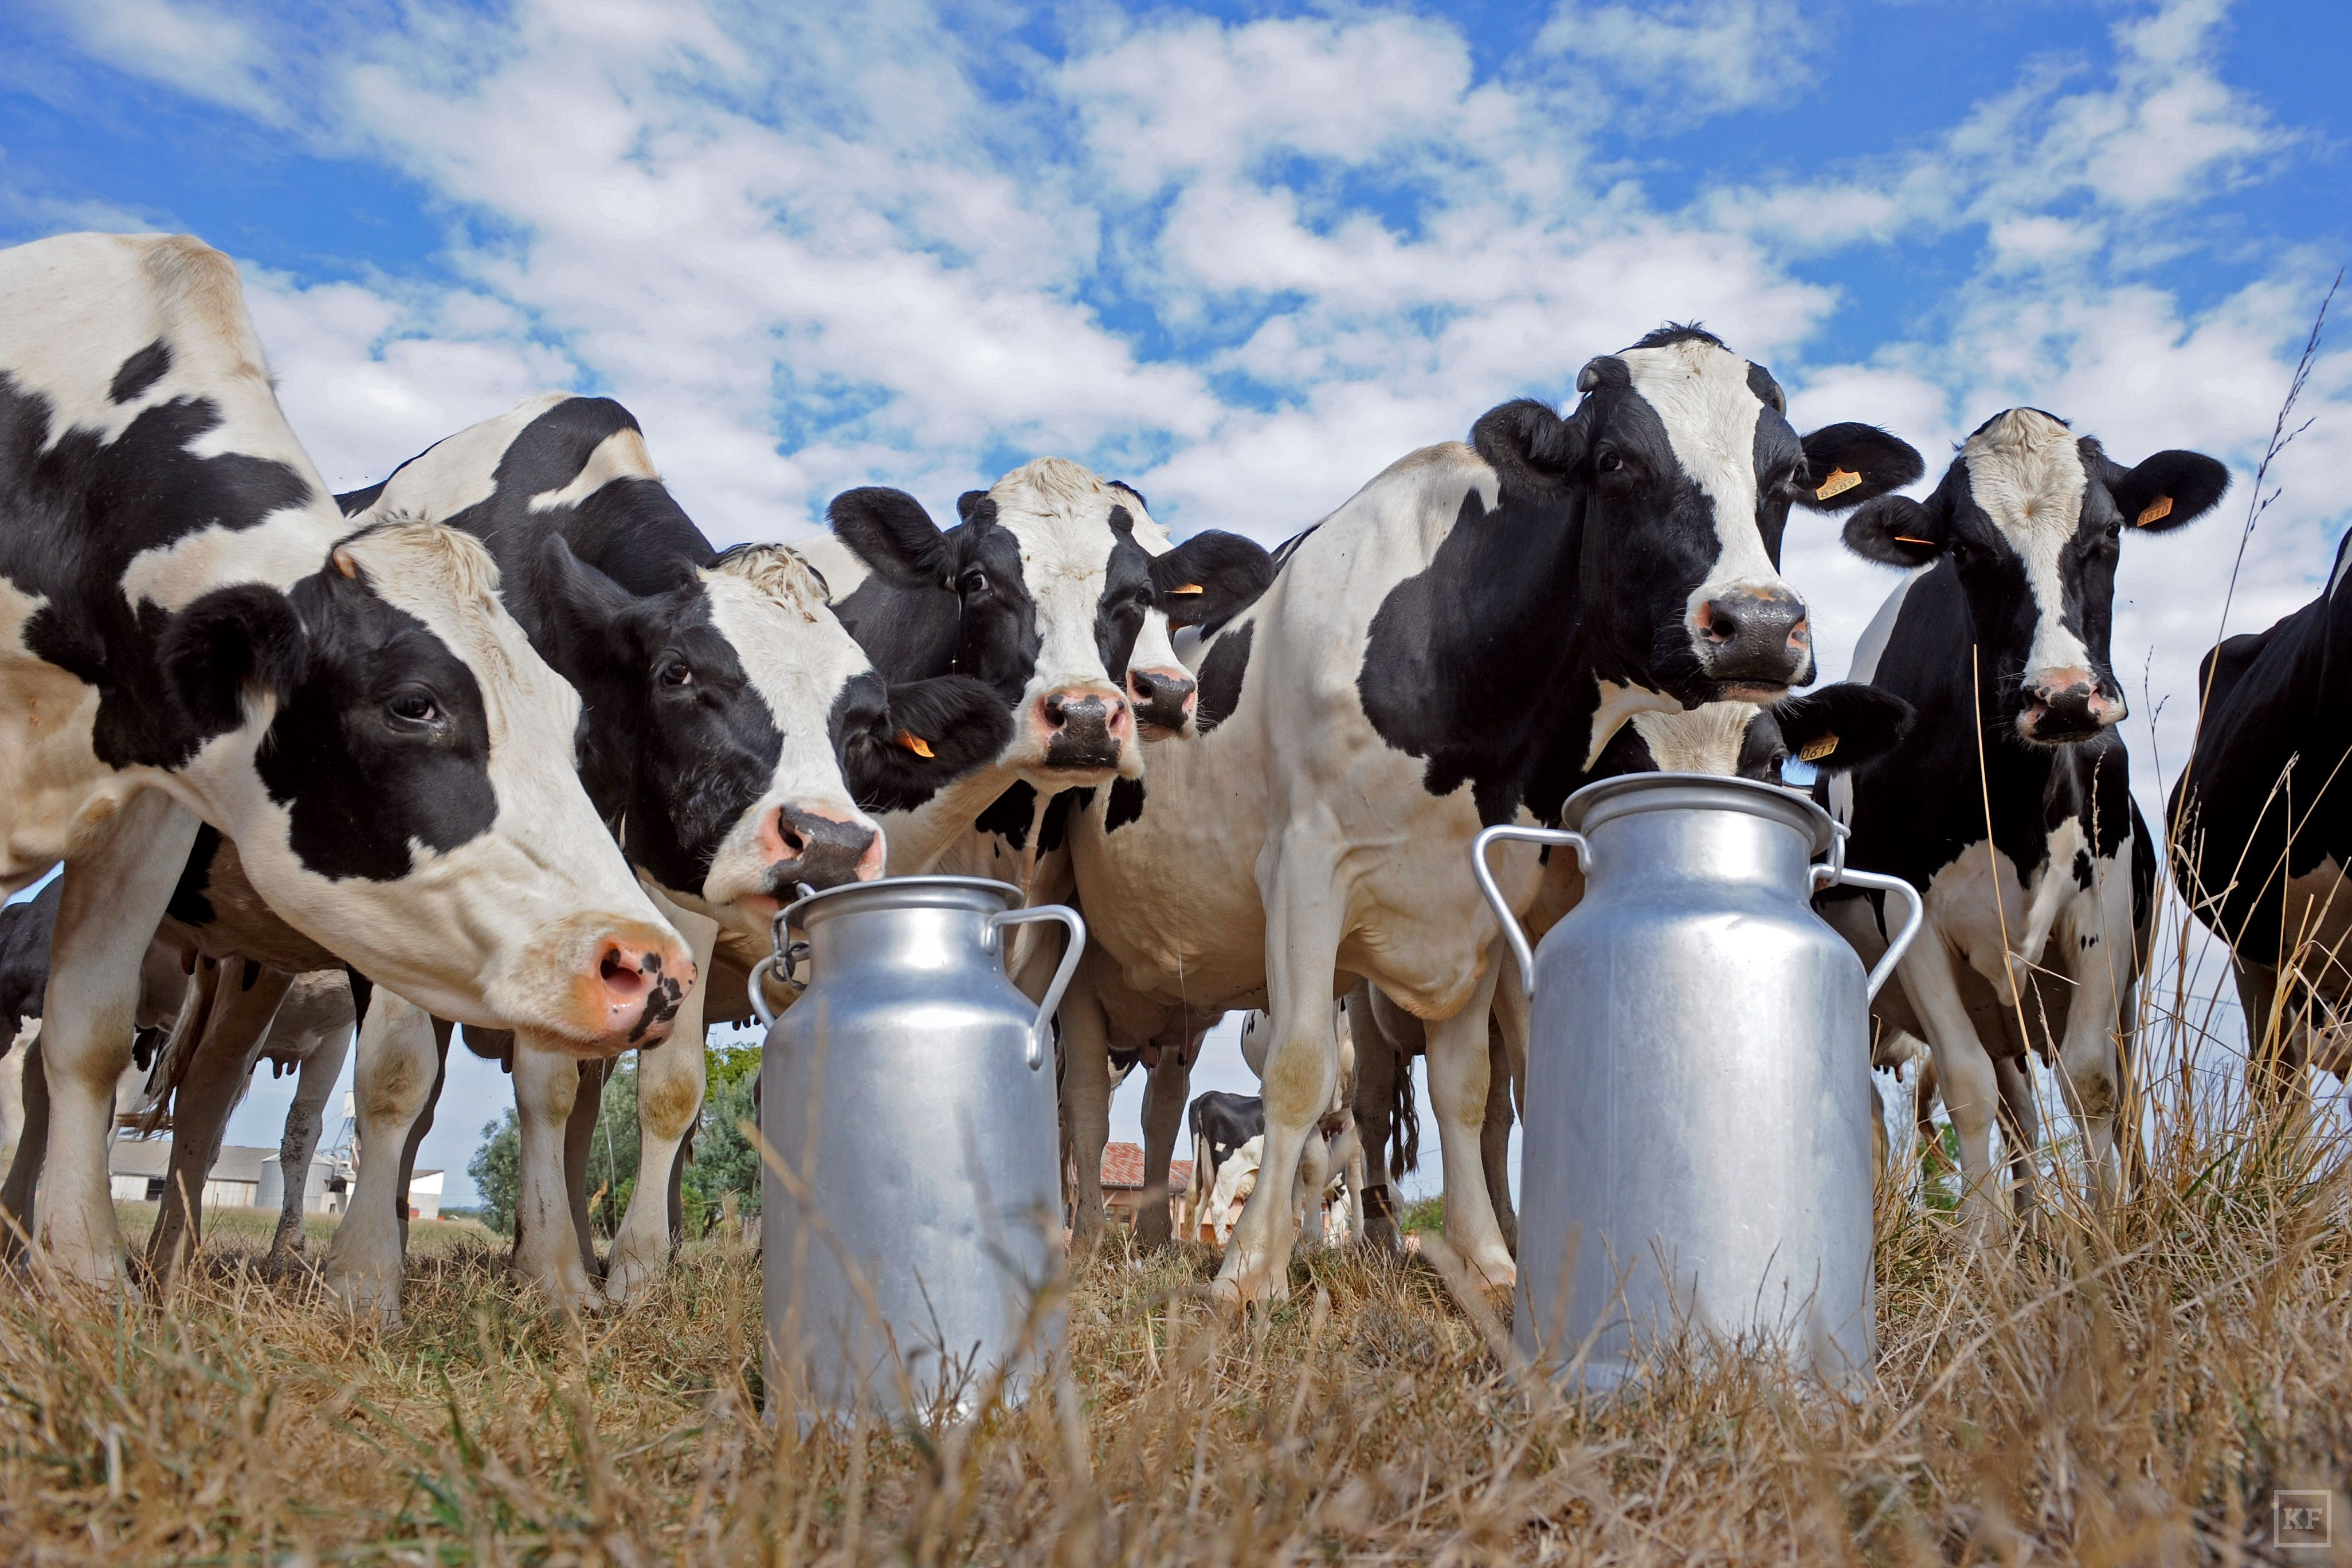 TO GO WITH AFP STORY BY MARIETTE LE ROUX (FILES)-- A file photo taken on September 15, 2009 shows Prim'Holstein cows standing by milk churns in the field of a dairy farm in Sainte-Colombe-en-Bruilhois, southwestern France. Drink lots of milk to strengthen your bones and boost your health, doctors say. But a study in The BMJ medical journal Wednesday said Swedes with a high intake of cow's milk died younger -- and women suffered more fractures. The findings may warrant questions about recommendations for milk consumption, although further research is needed, its authors said, as the association may be purely coincidental. AFP PHOTO / JEAN-PIERRE MULLERJEAN-PIERRE MULLER/AFP/Getty Images ORG XMIT: - ORIG FILE ID: 534905279